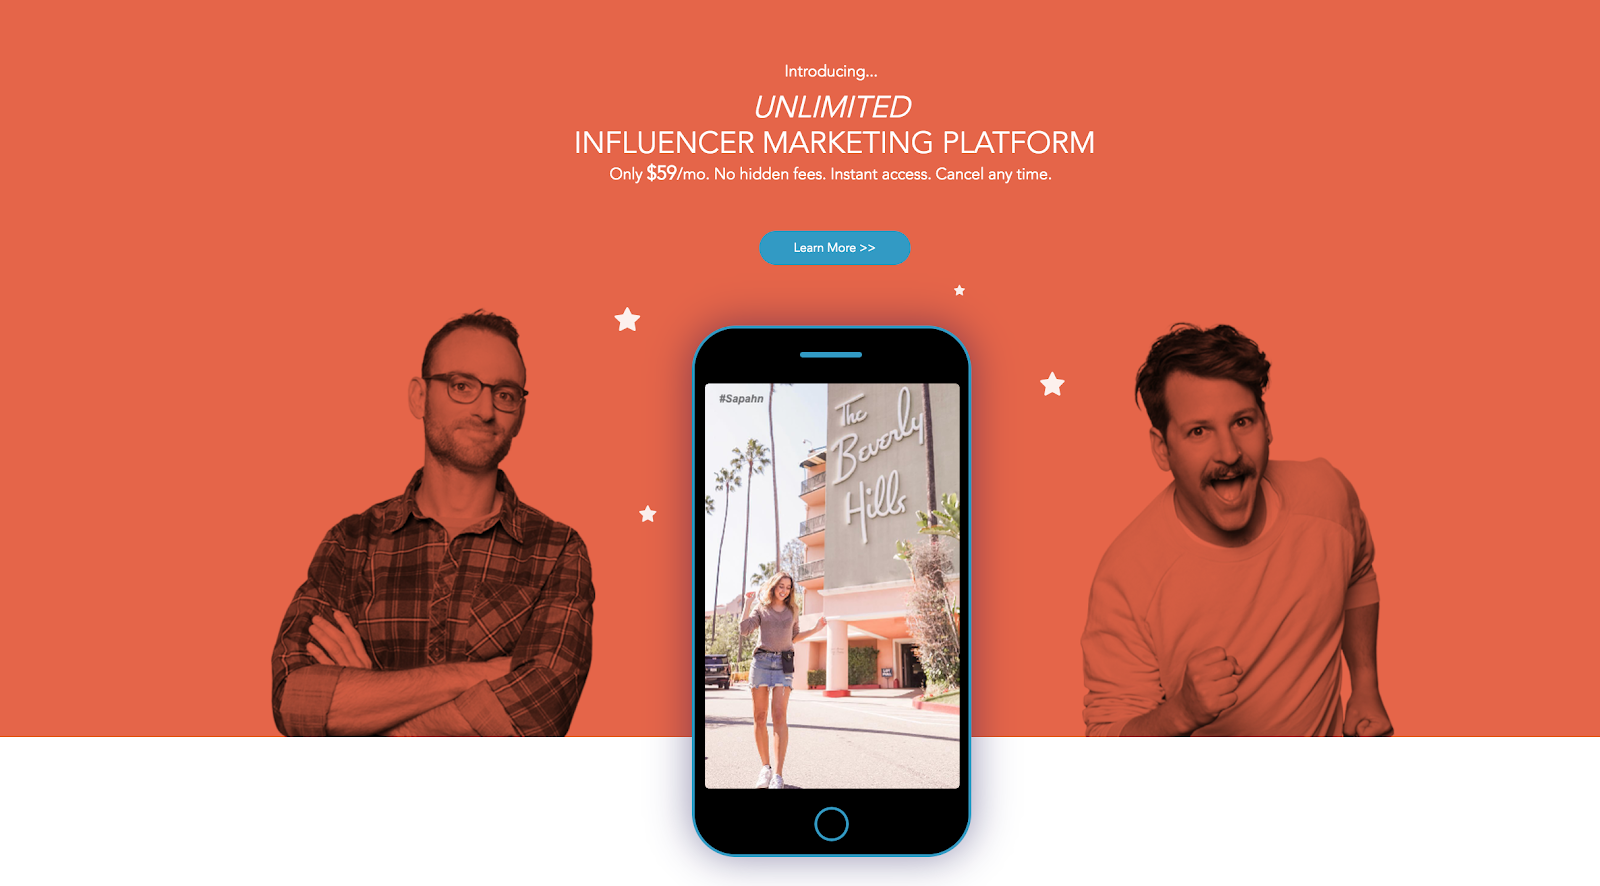 Plataforma de marketing de Influencer de Fourstarzz Media